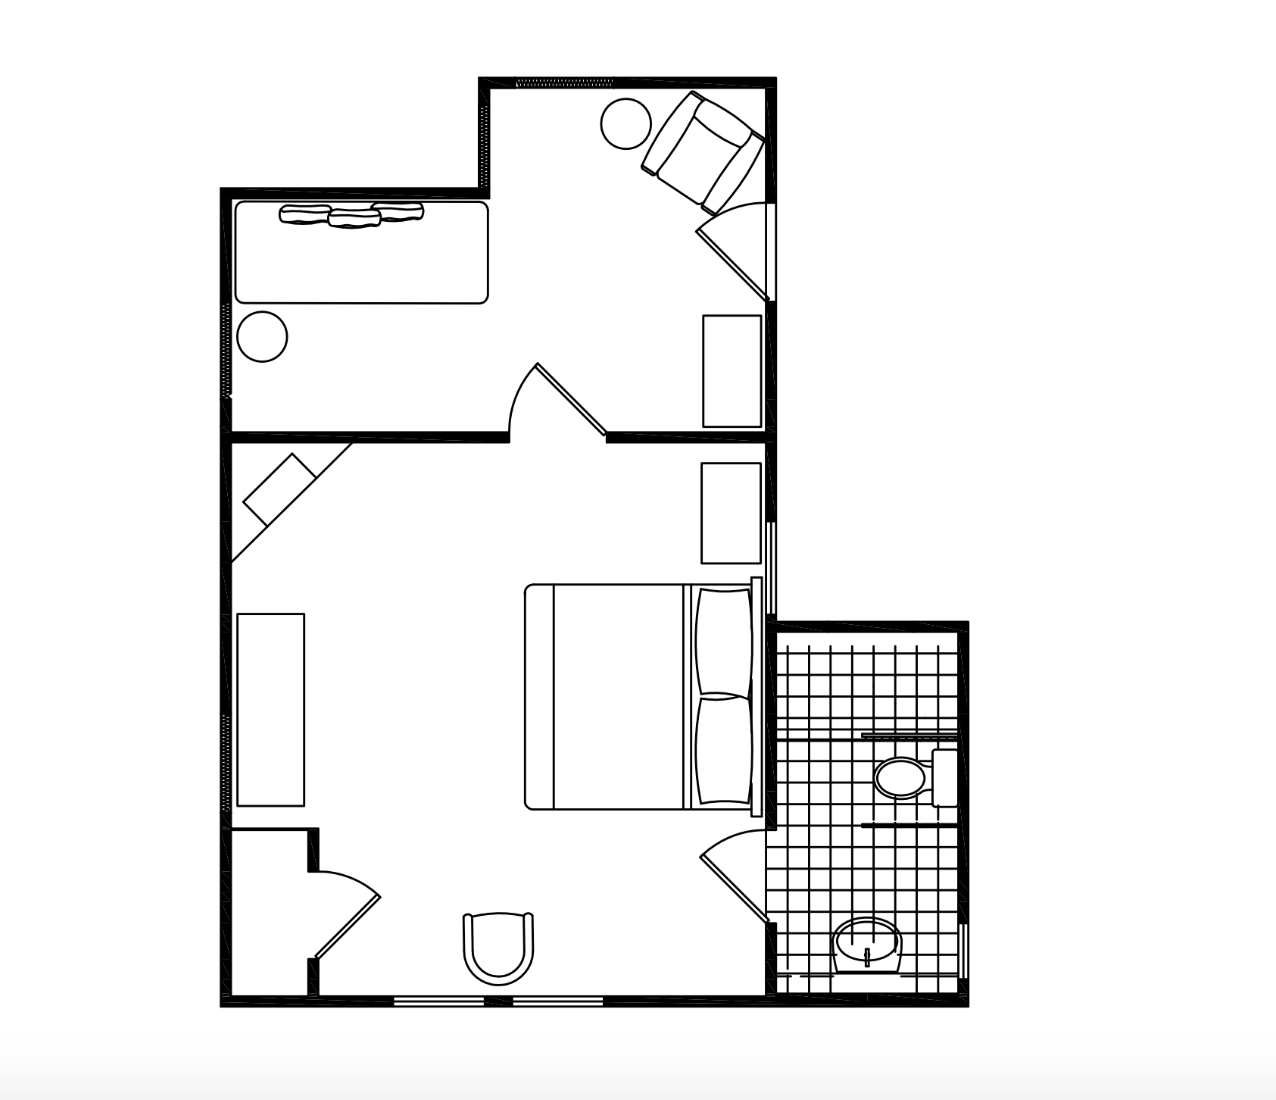 Floor Plan of A Small Sitting Room, A Bedroom and A Bathroom